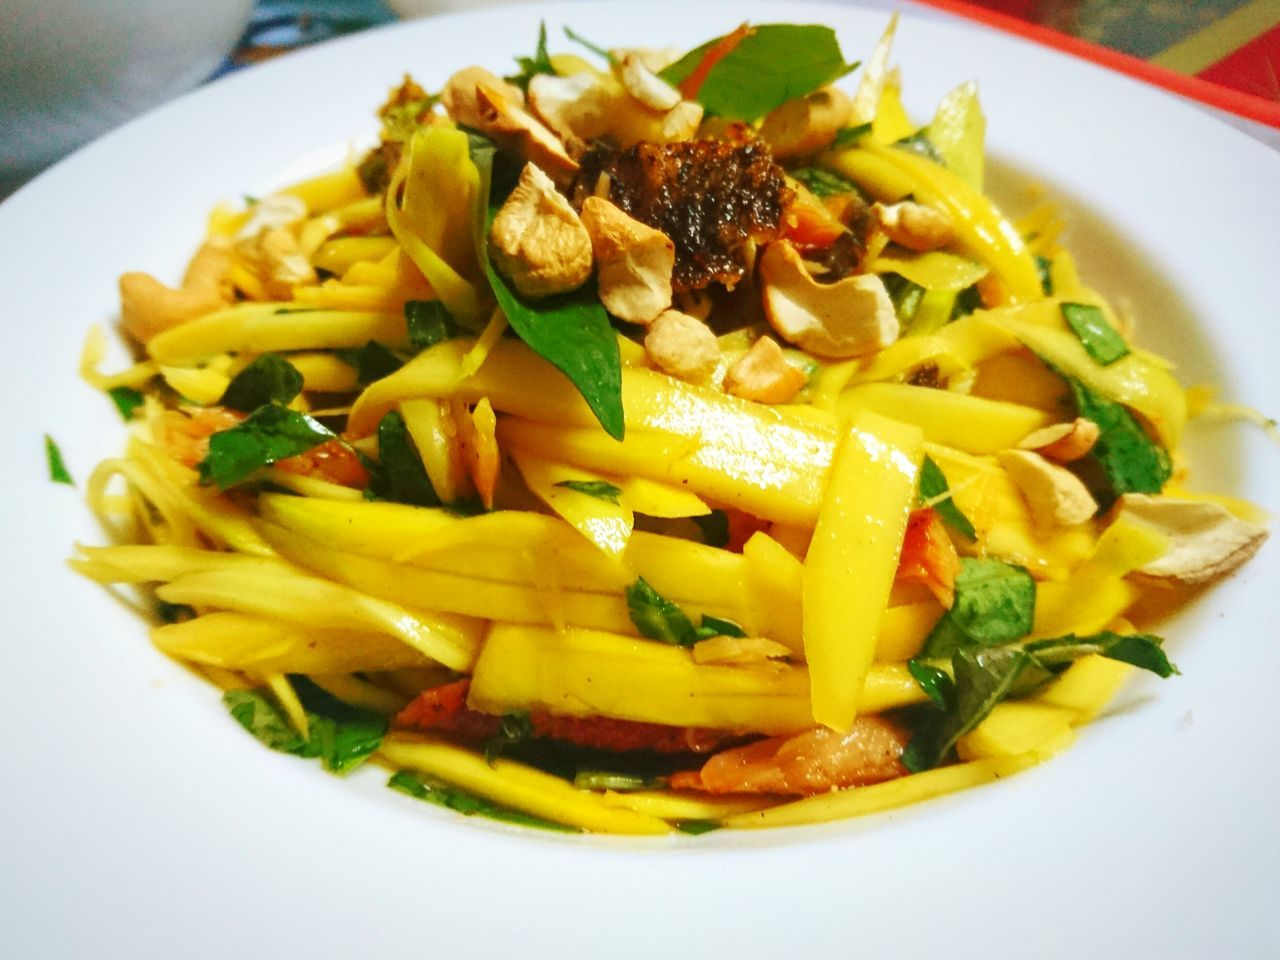 food, food and drink, freshness, ready-to-eat, plate, healthy eating, close-up, no people, italian food, serving size, garnish, indoors, day